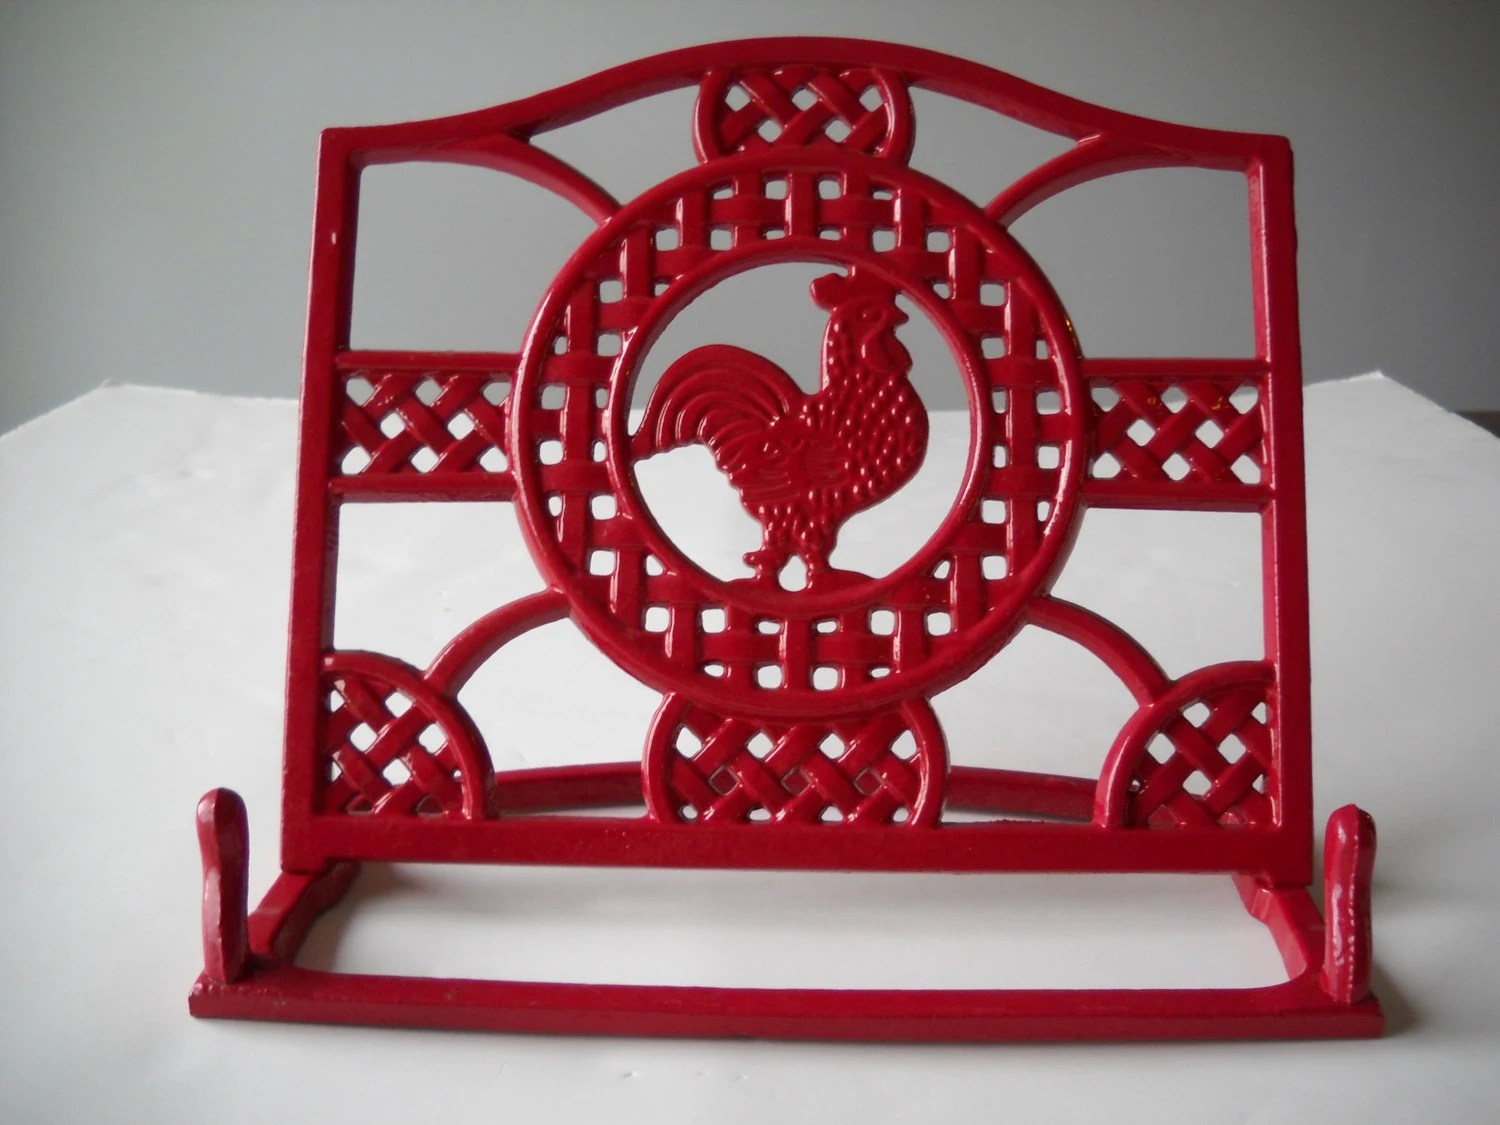 rooster decor kitchen 2 seater table set cast iron cookbook holder / red